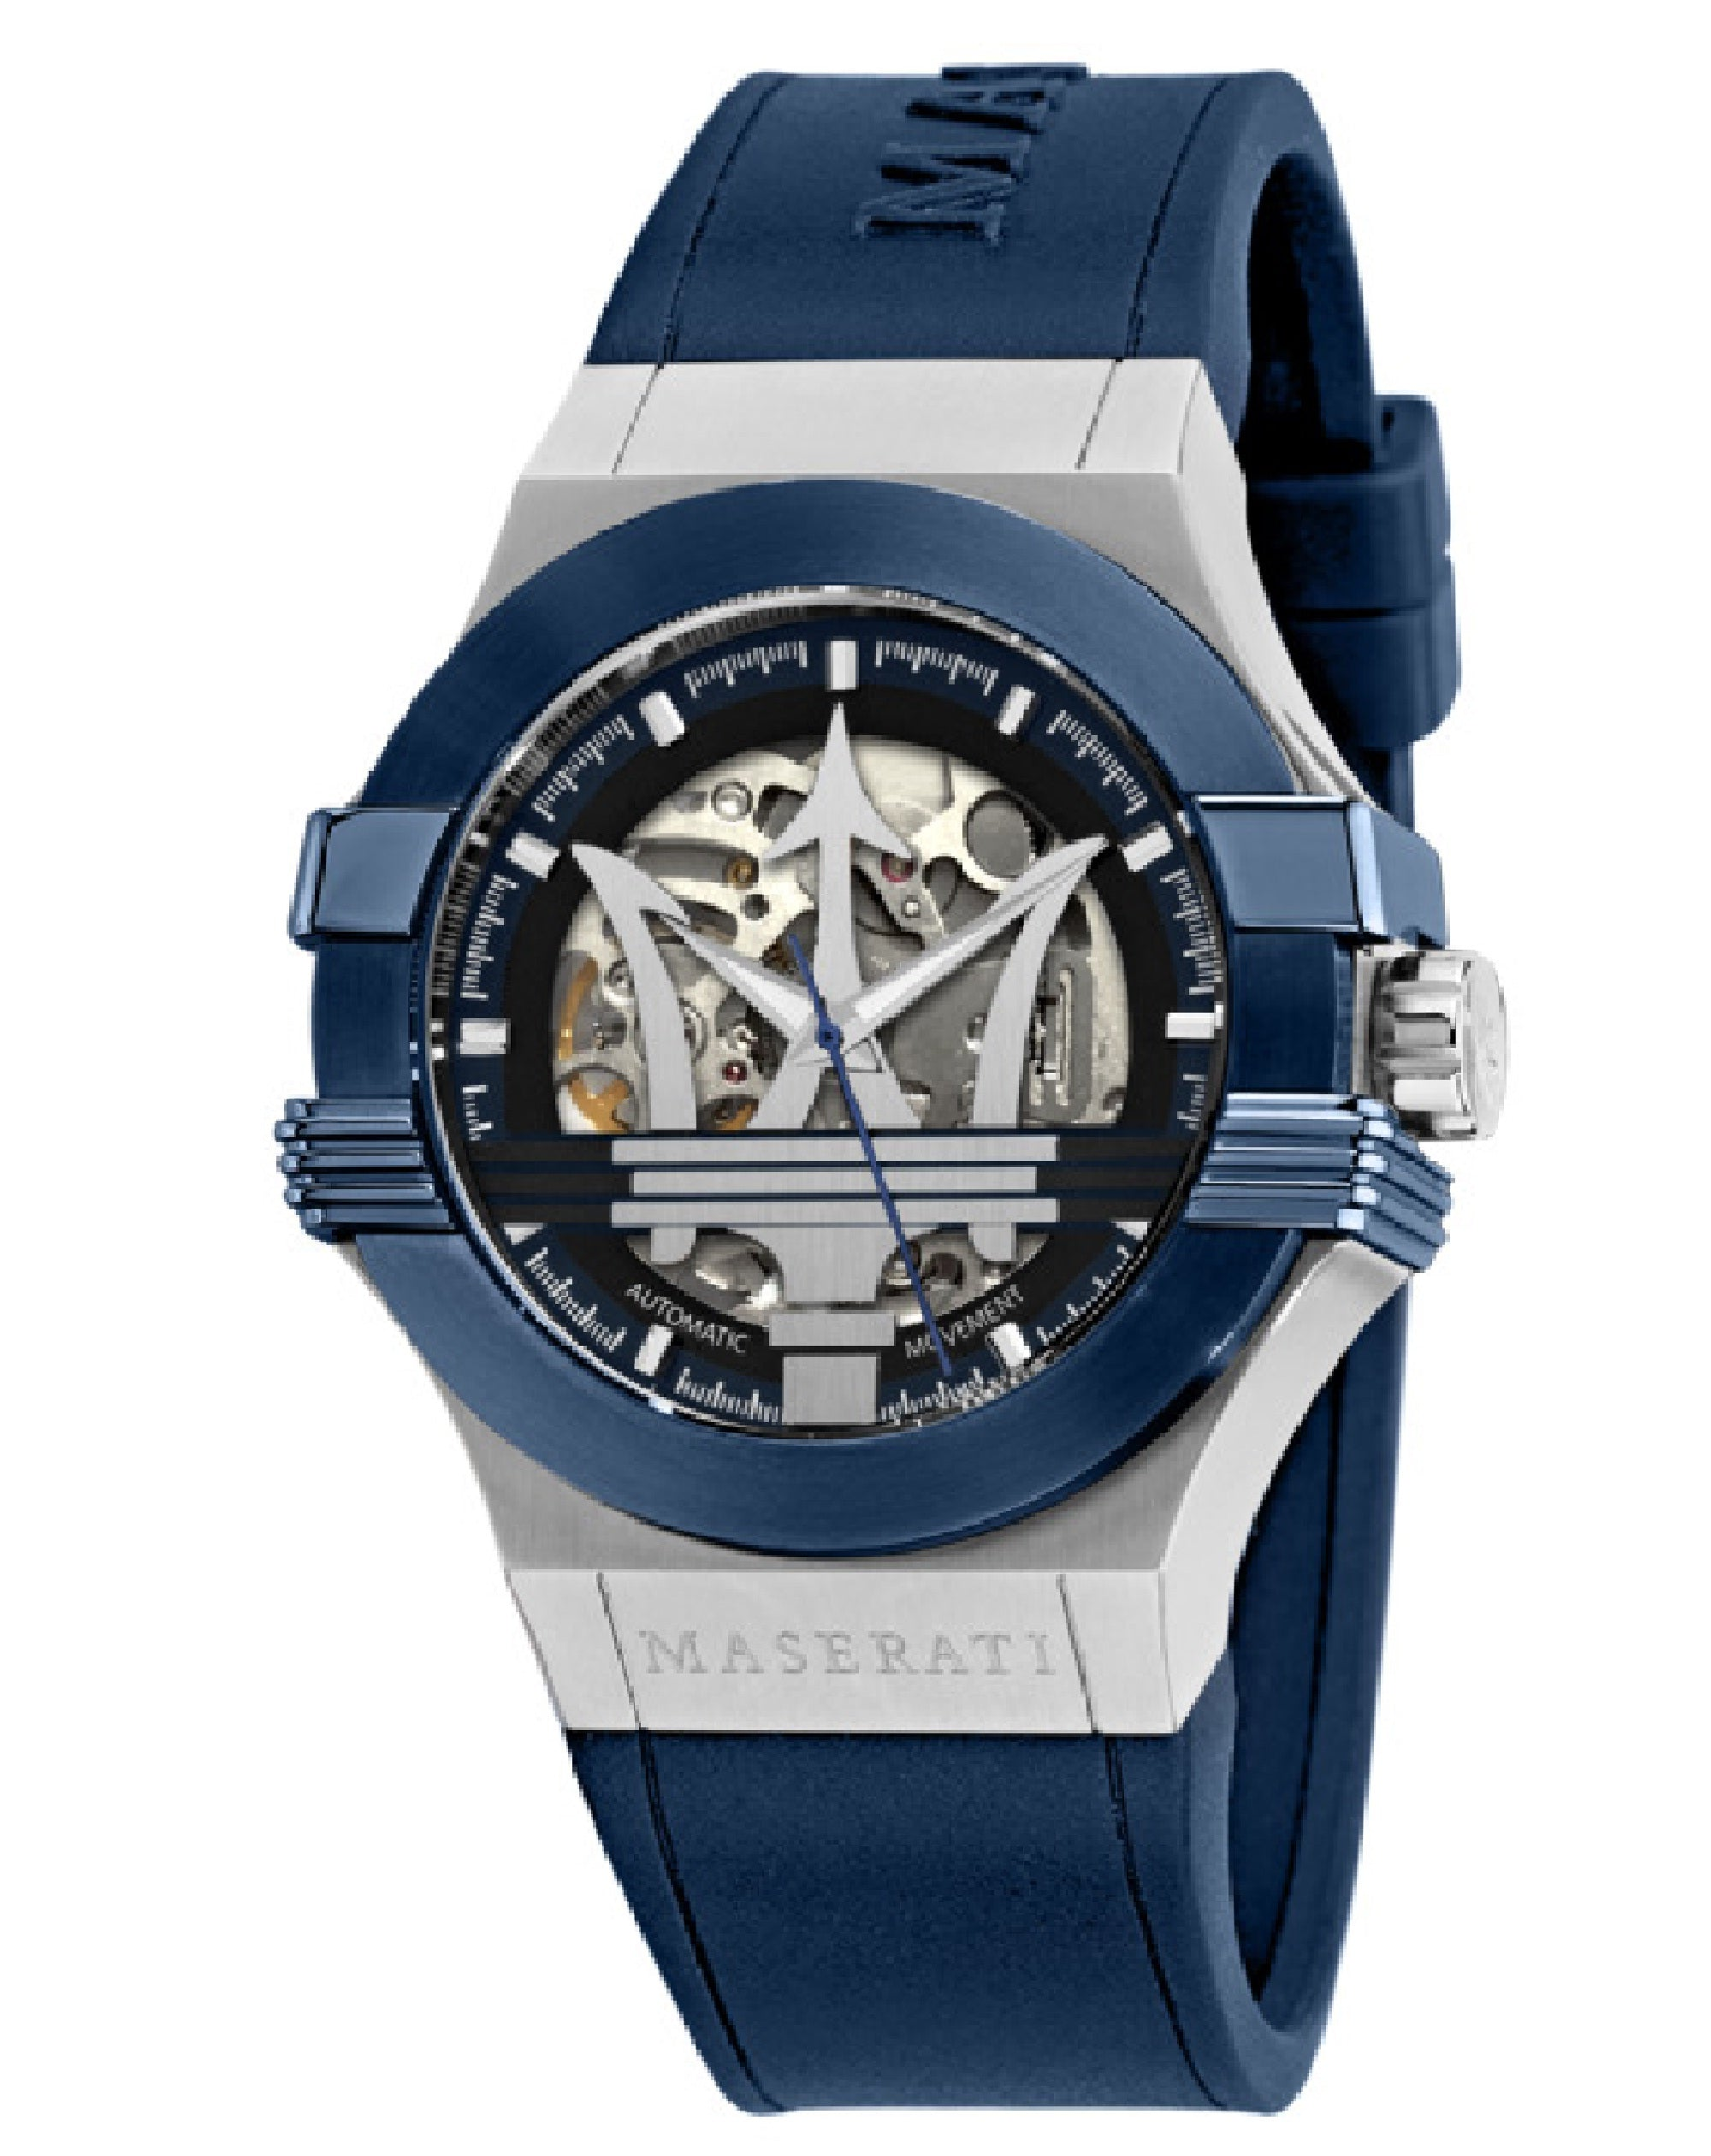 Potenza Automatic Blue Rubber Watch, R8821108028